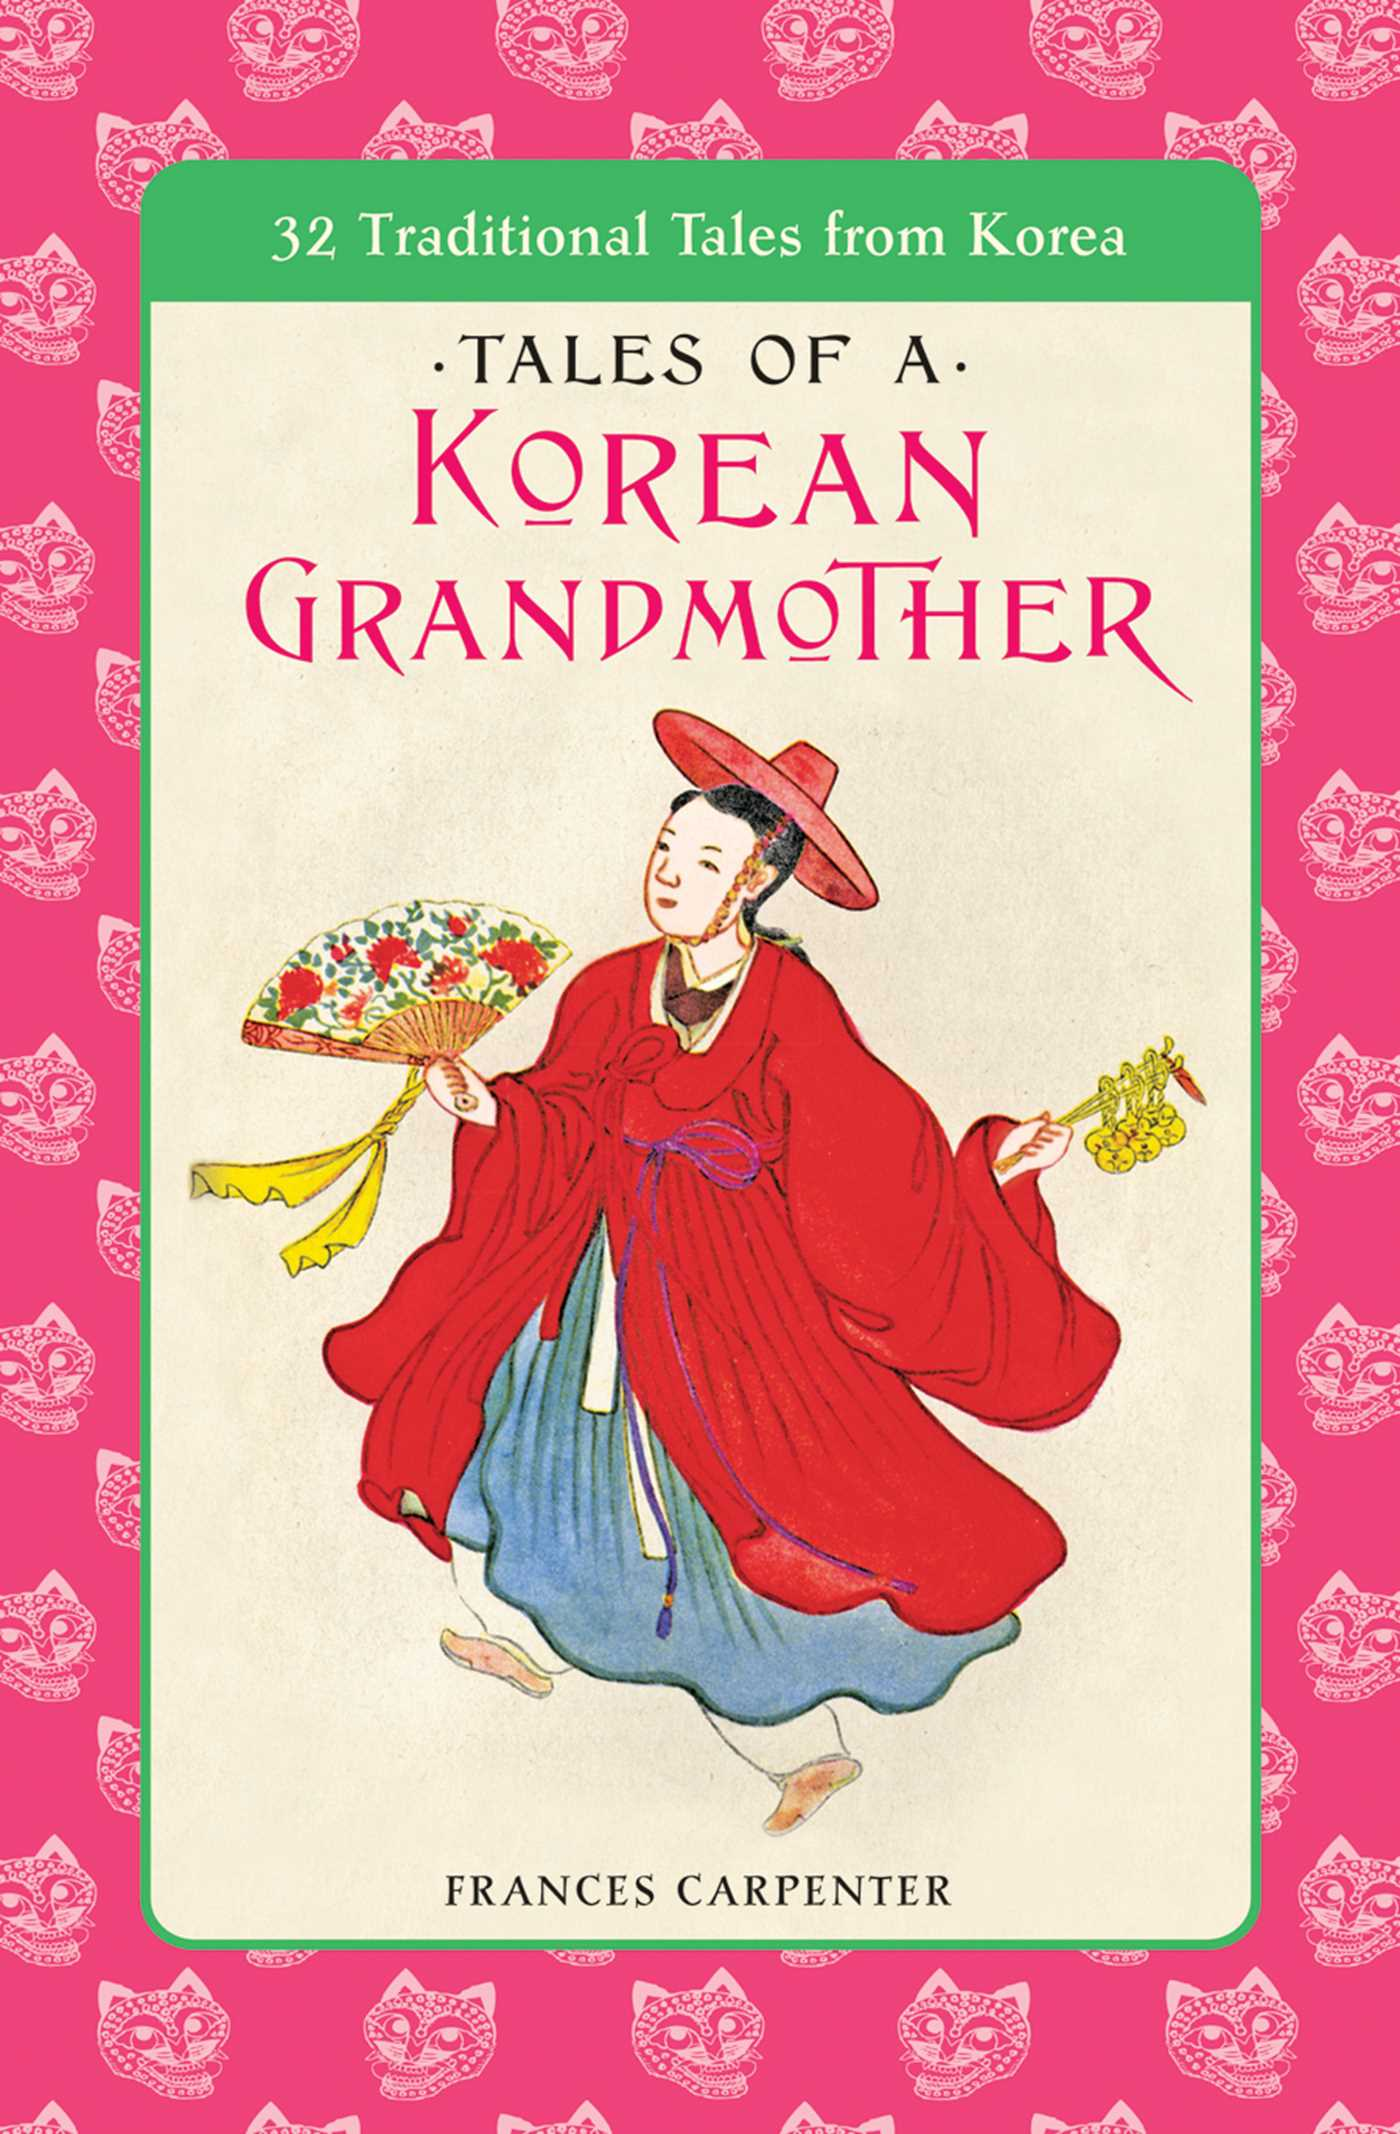 Tales of a korean grandmother 9780804849203 hr